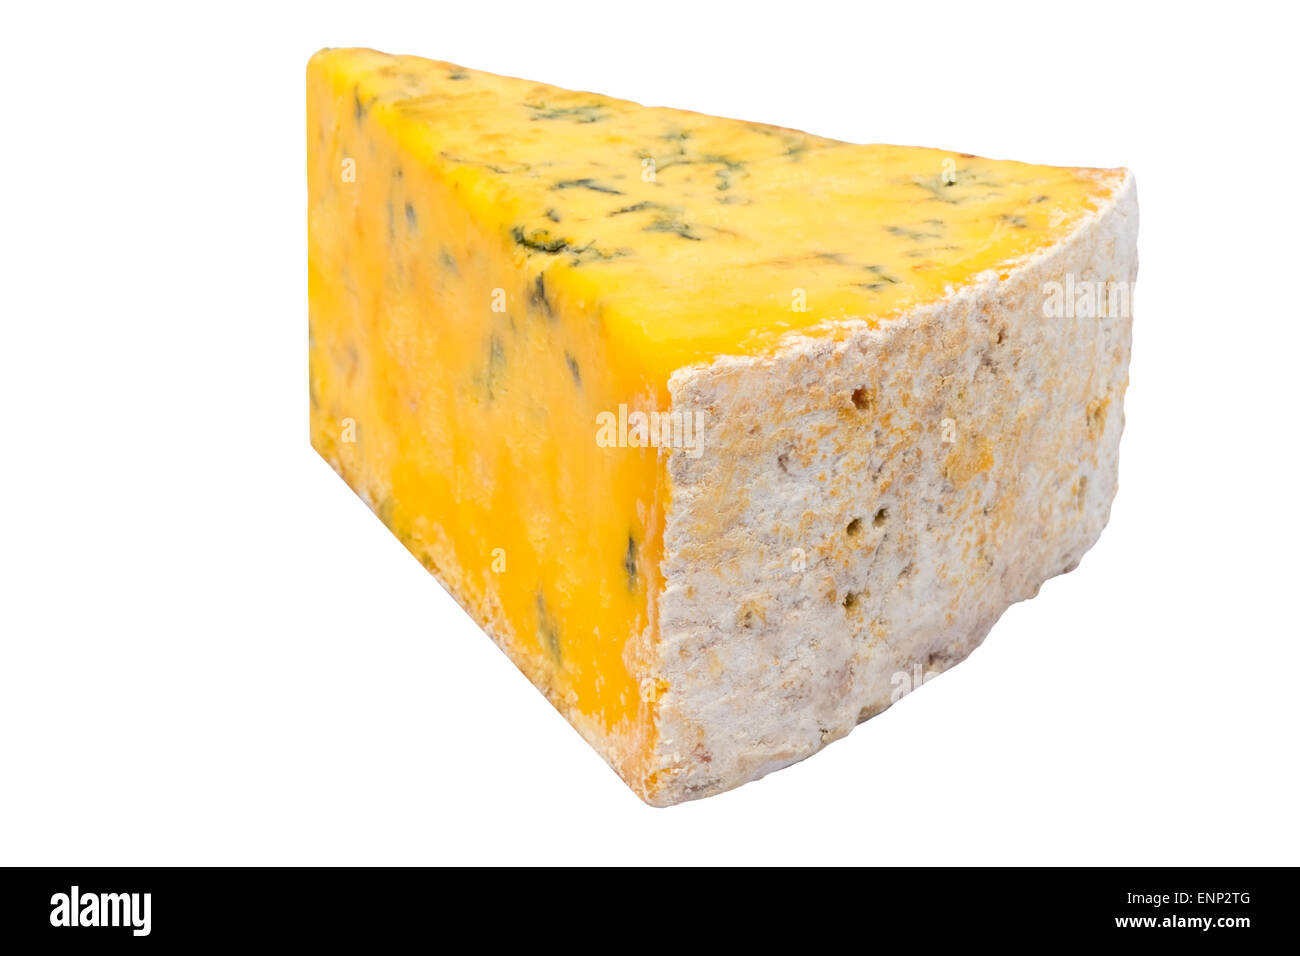 Shropshire blue cheese cut out or isolated against a white background, UK. - Stock Image